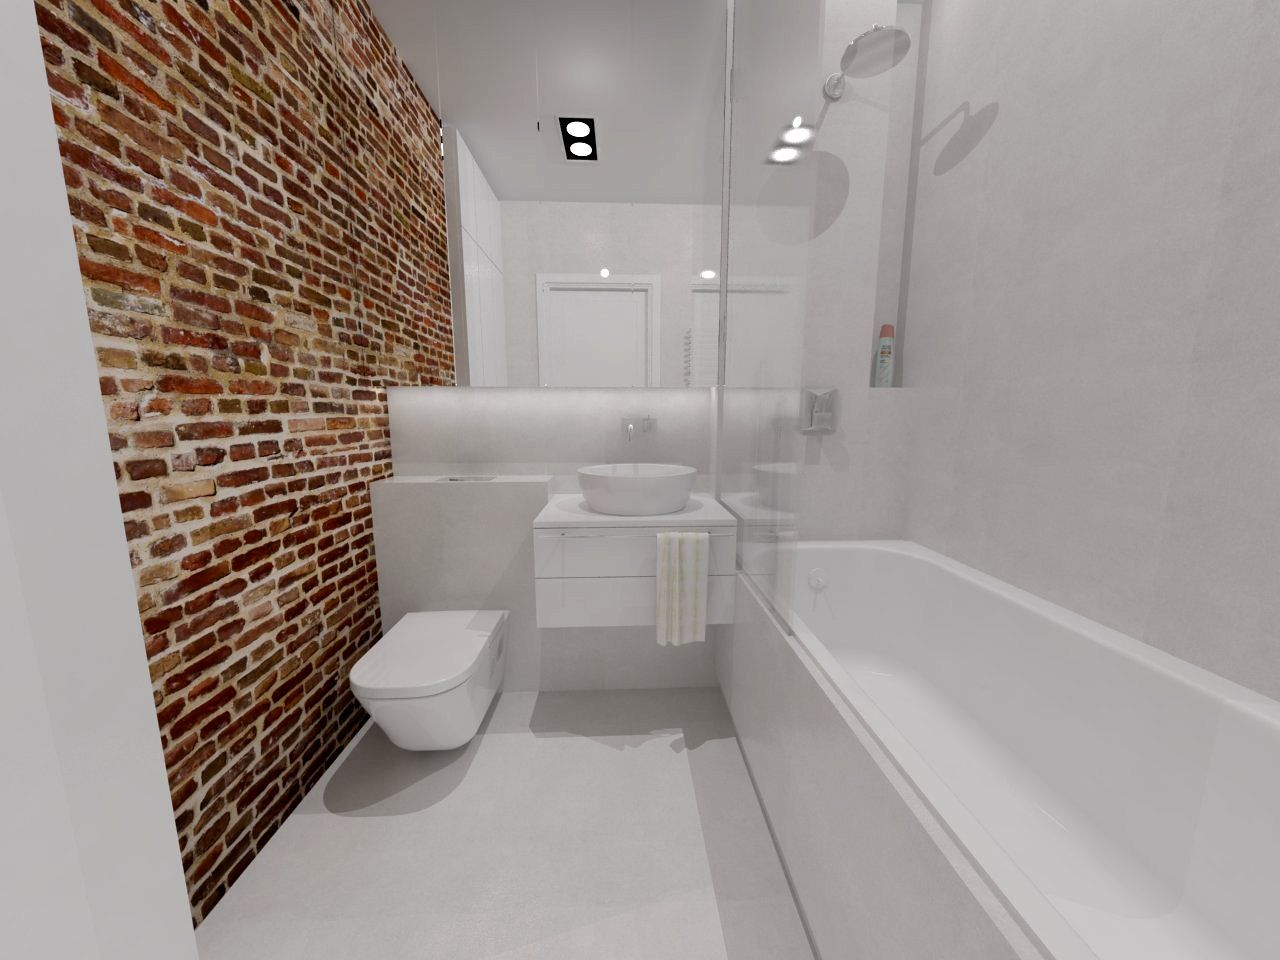 Interior Brick Wall Tiles Modern Bathroom With Red Brick Wall Nowoczesna łazienka